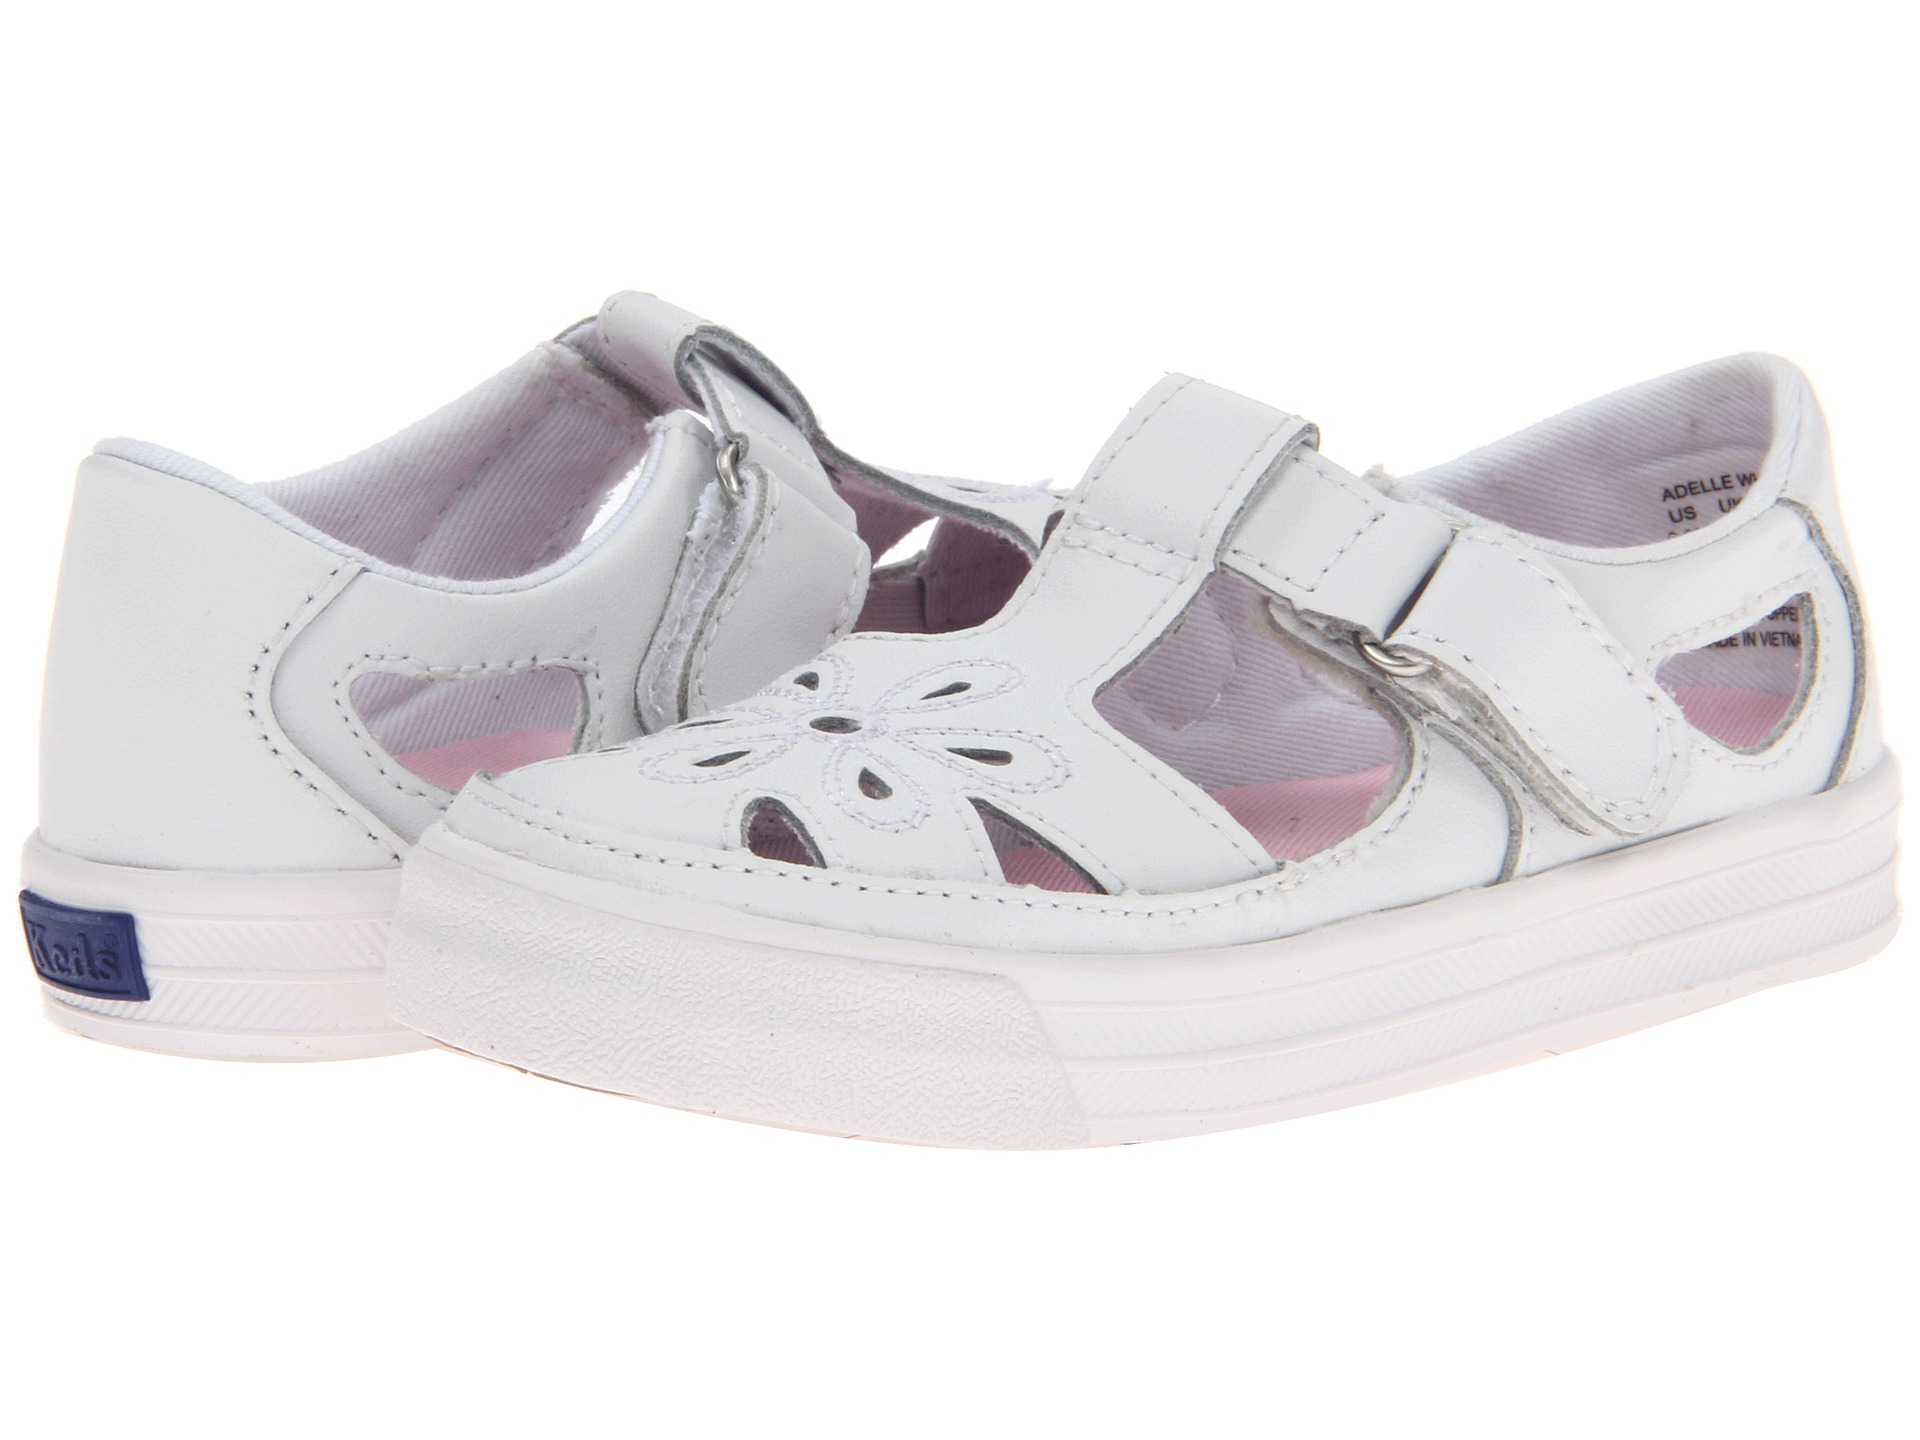 keds childrens sneakers